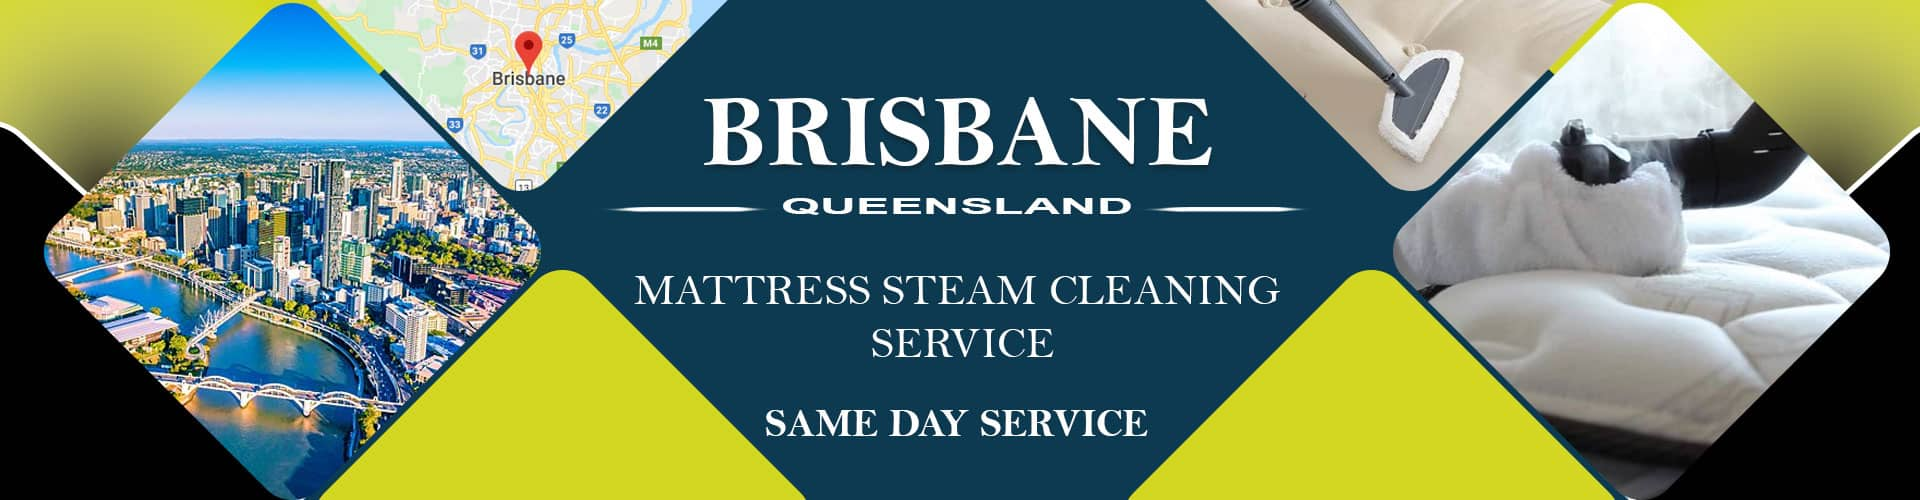 Mattress Steam Cleaning Brisbane